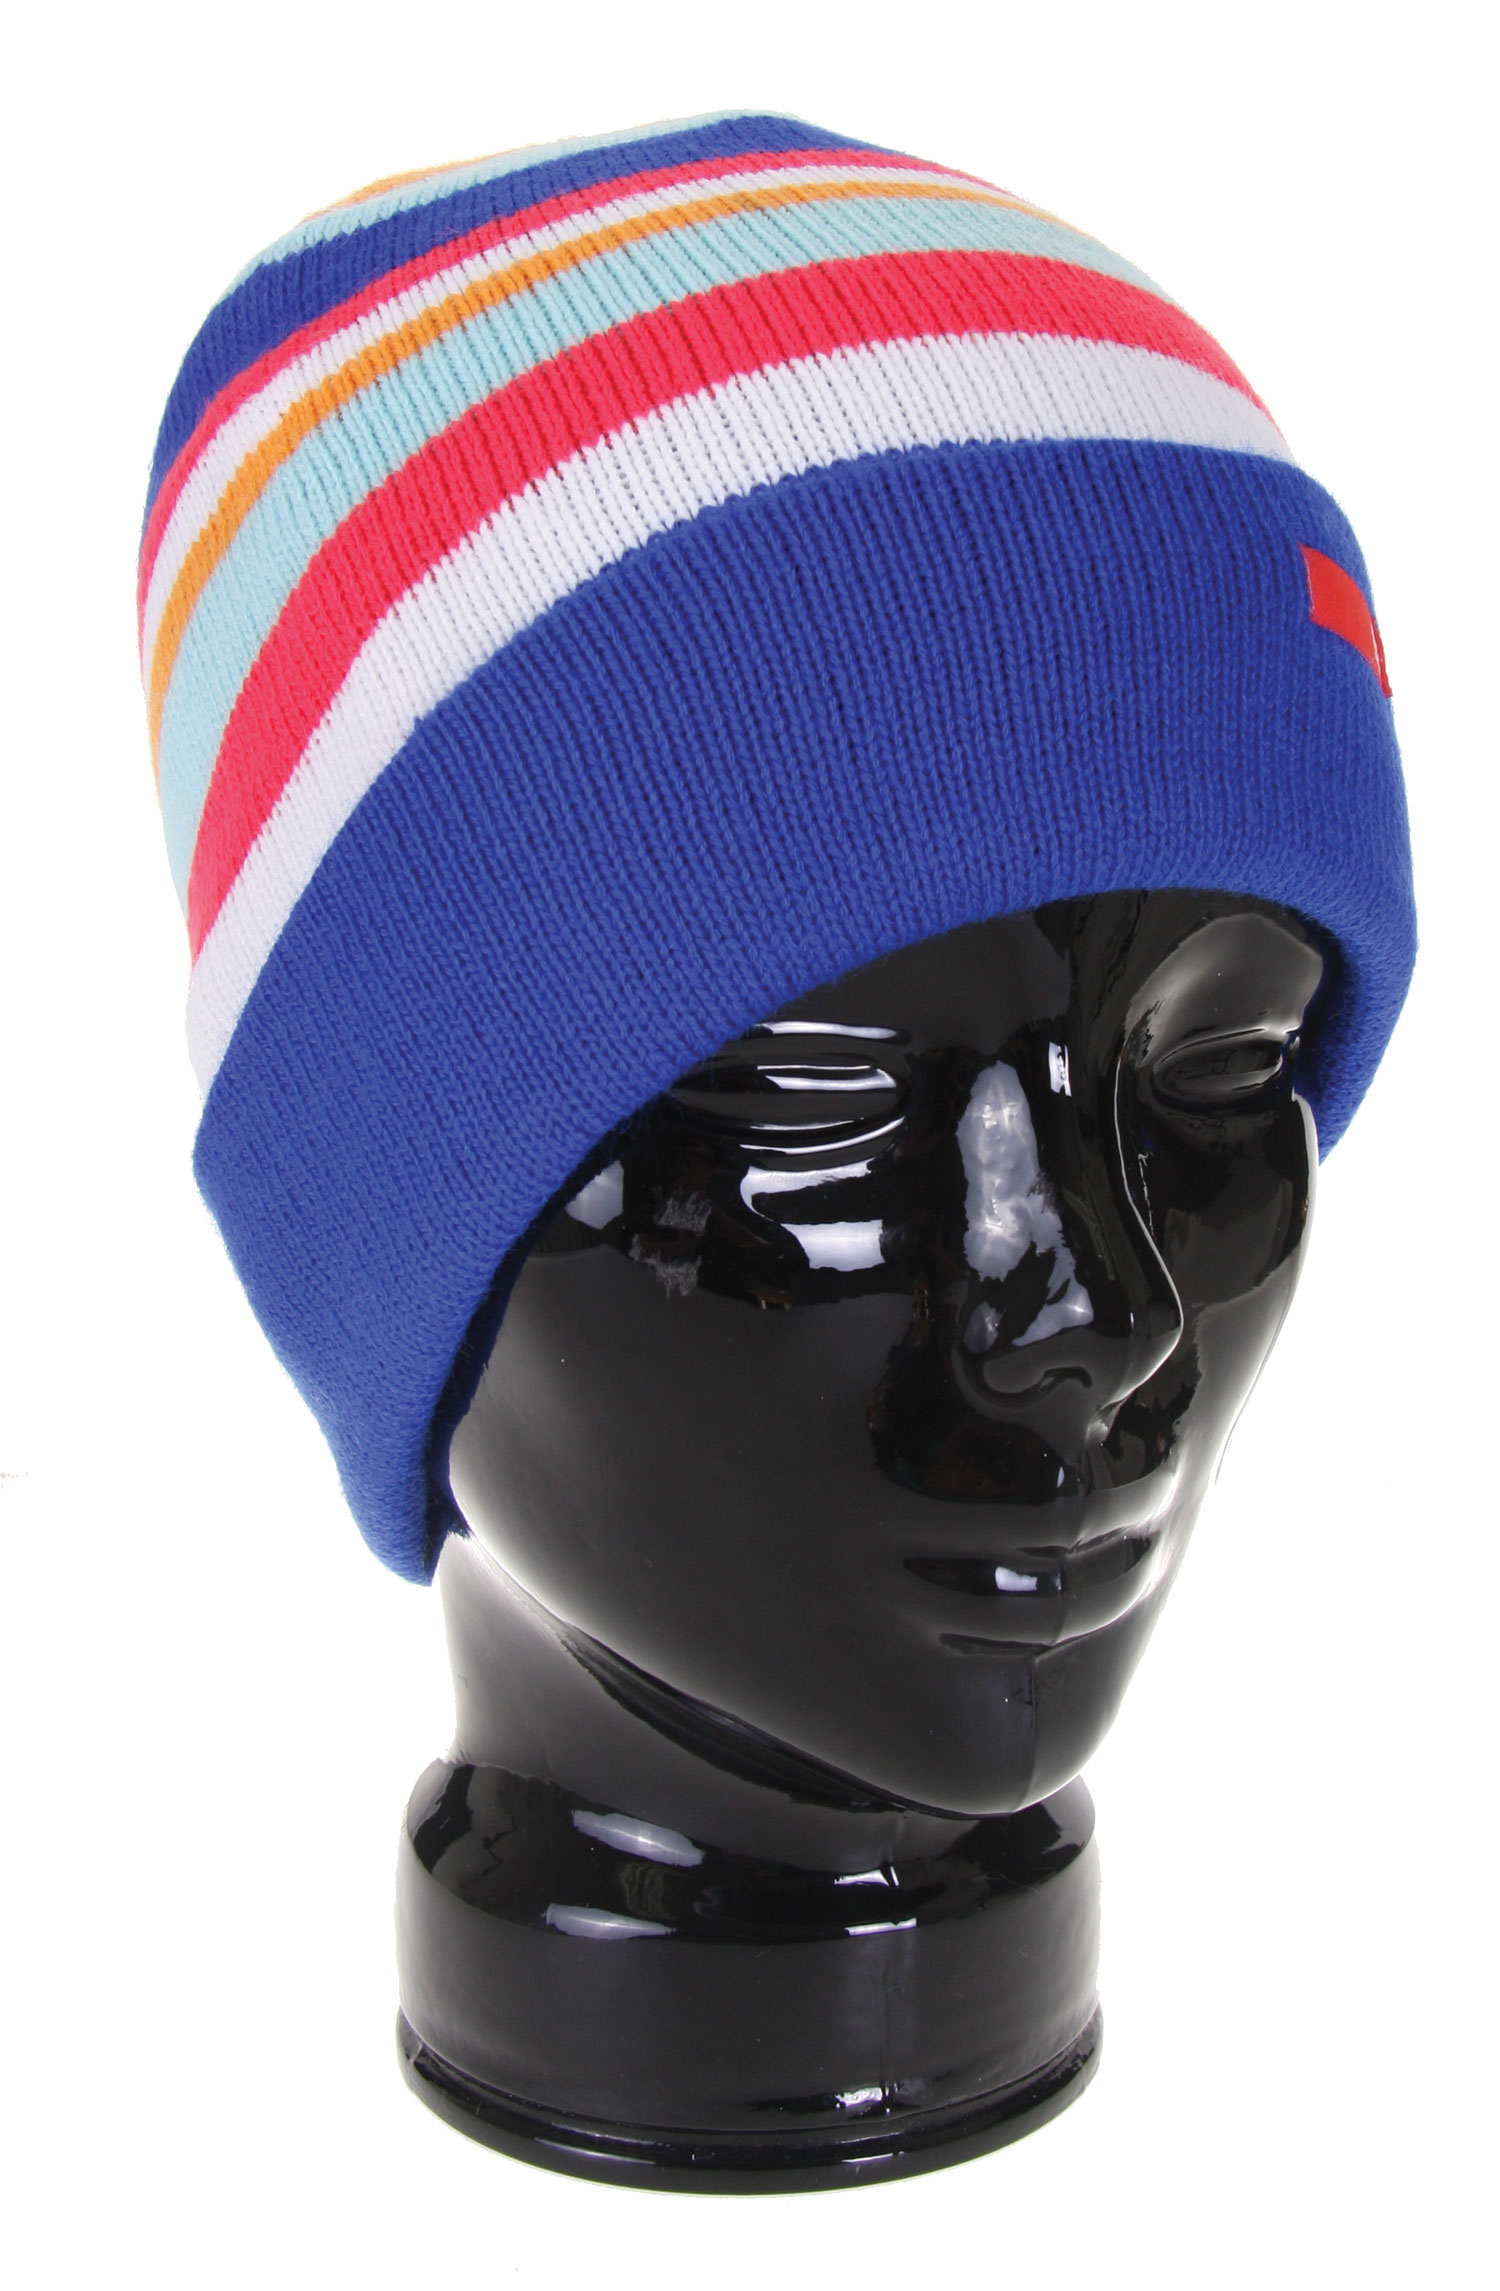 Snowboard Are you a classic kind of person? Well if you love the classic products and how they look you will love this Foursquare Classic Beanie. It's a classic so you can't go wrong. It offers an amazing looking stripe design that will definitely improve the looks of your head while you are tearing down those slopes and pulling off all those crazy stunts. It offers great looks, but it also offers classic warmth. Not that normal warmth that normal beanies offer, this is classic warmth, the type of warmth you can only find with a classic looking beanie. It's the perfect way to keep it simple and look great this winter.Key Features of the Foursquare Classic Beanie Reflux Blue: 100% acrylic, Machine knit. - $8.37